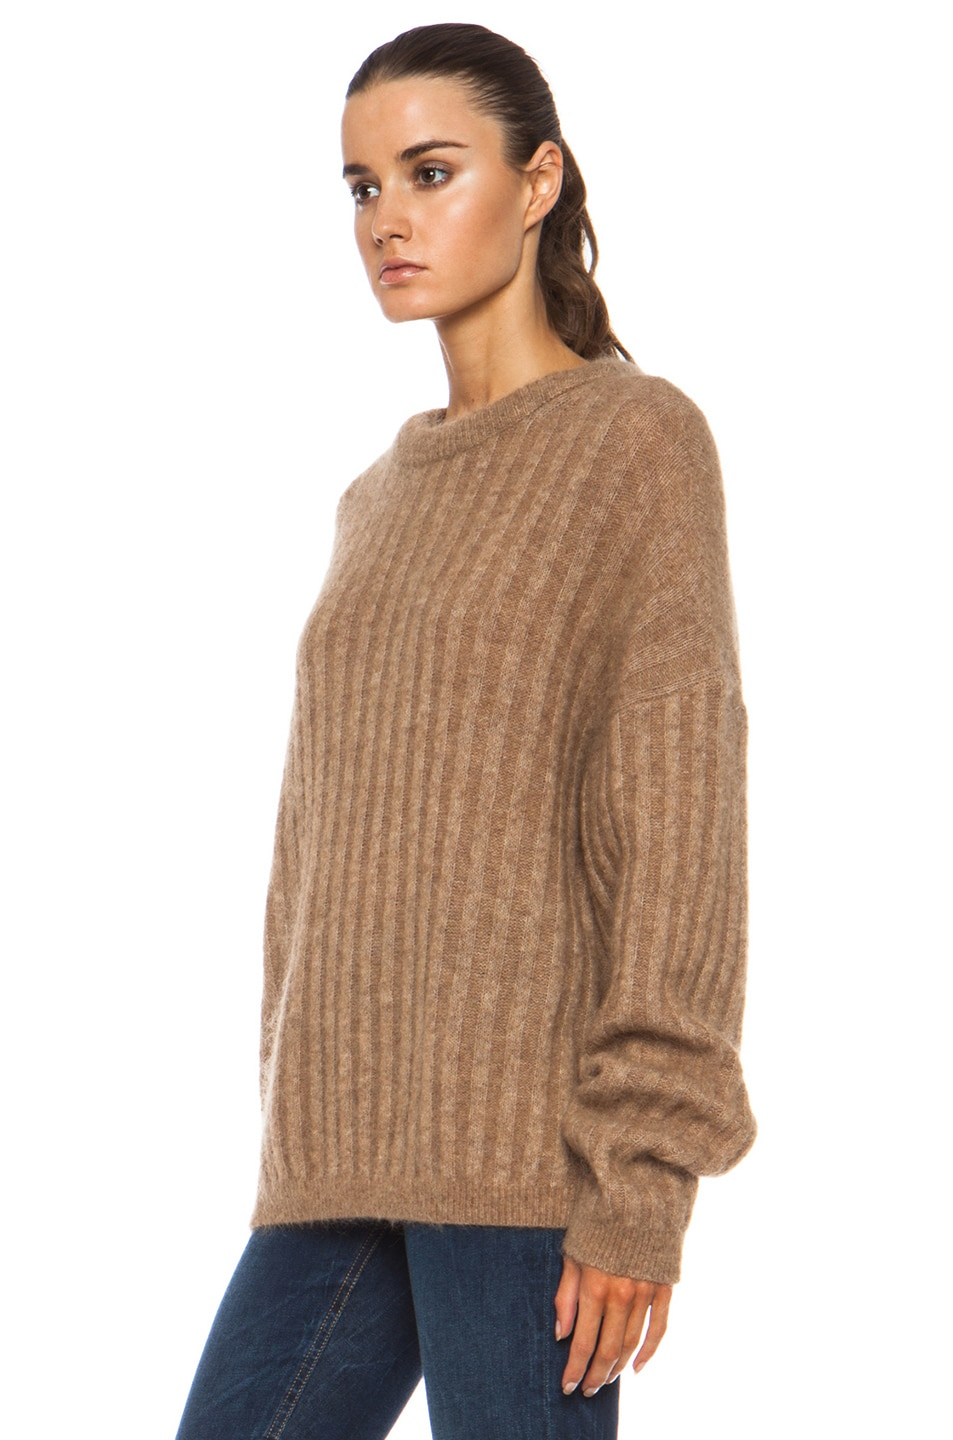 eb6b3488c33ae Image 2 of Acne Studios Dramatic Mohair-Blend Sweater in Camel